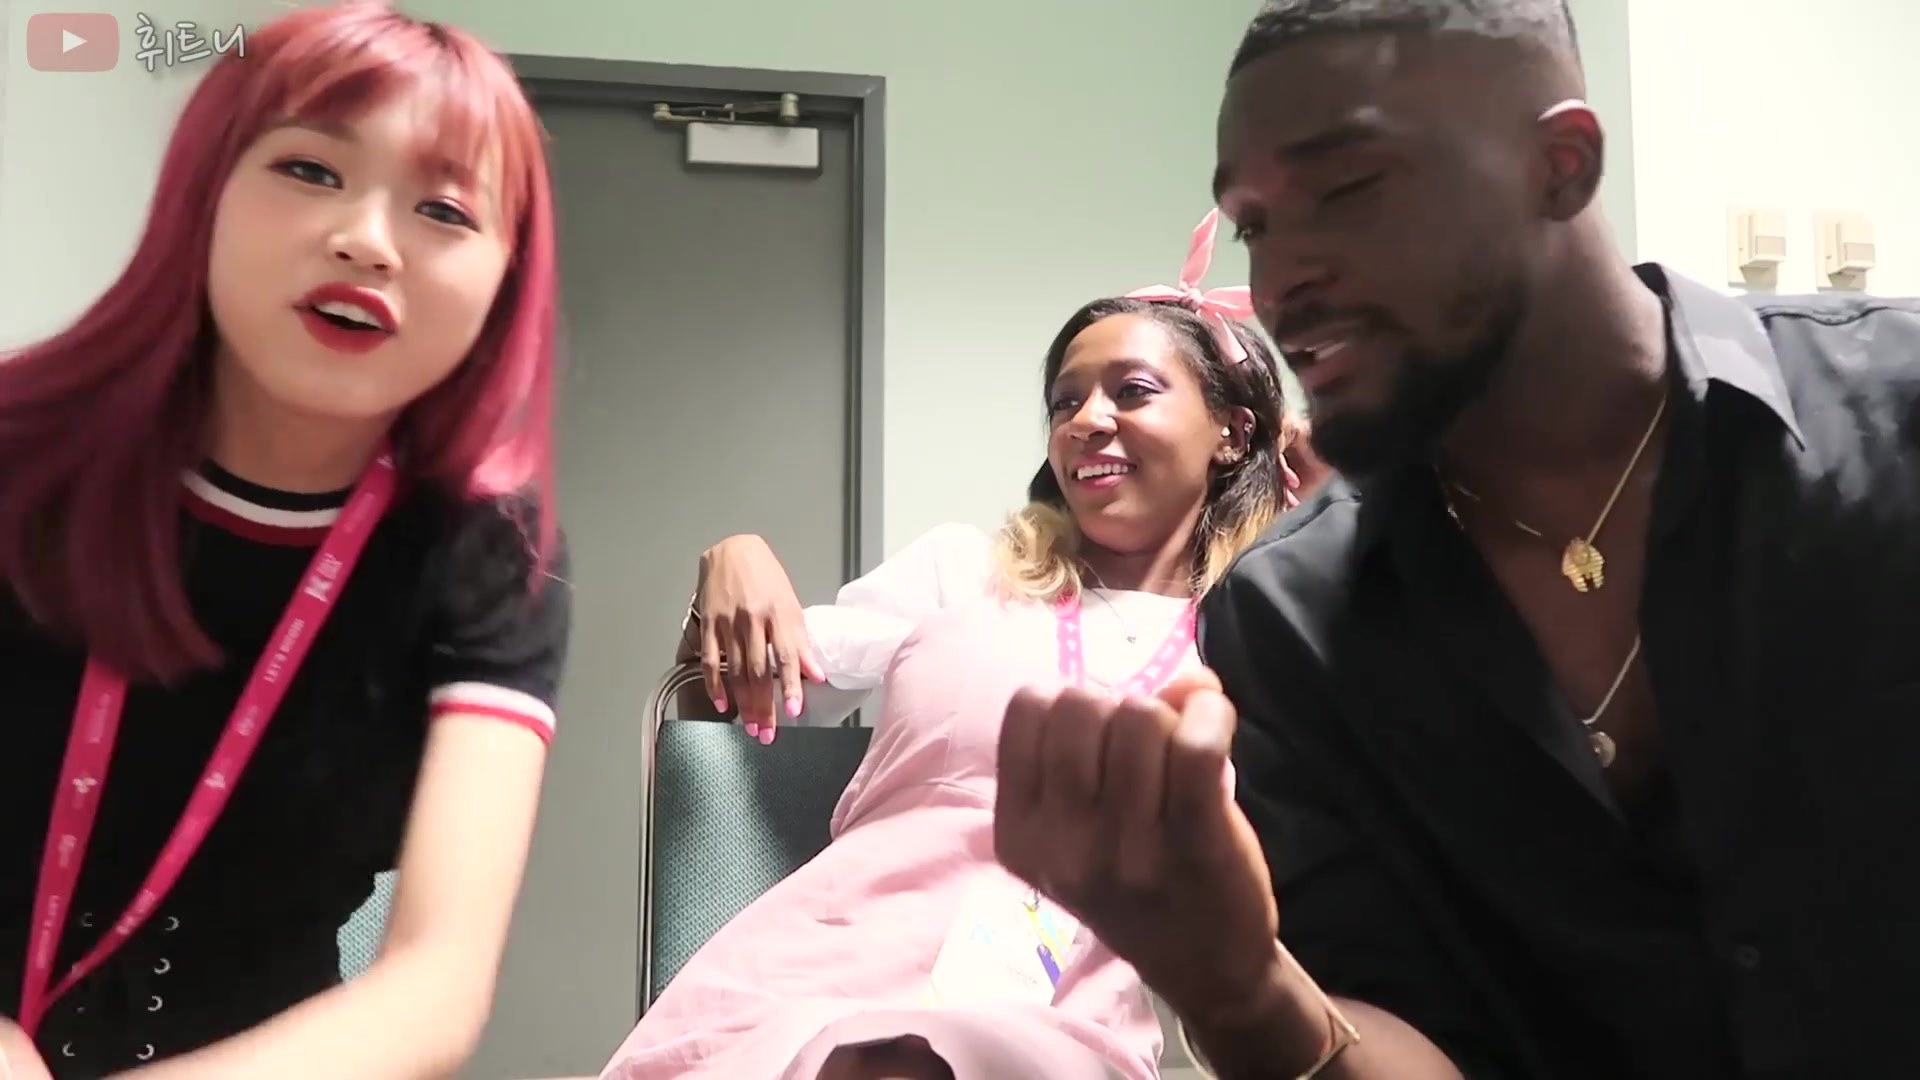 whitneybae Episode 84: 7-Second Challenge! with Sam Okyere, Sunny's Channel & whitneybae